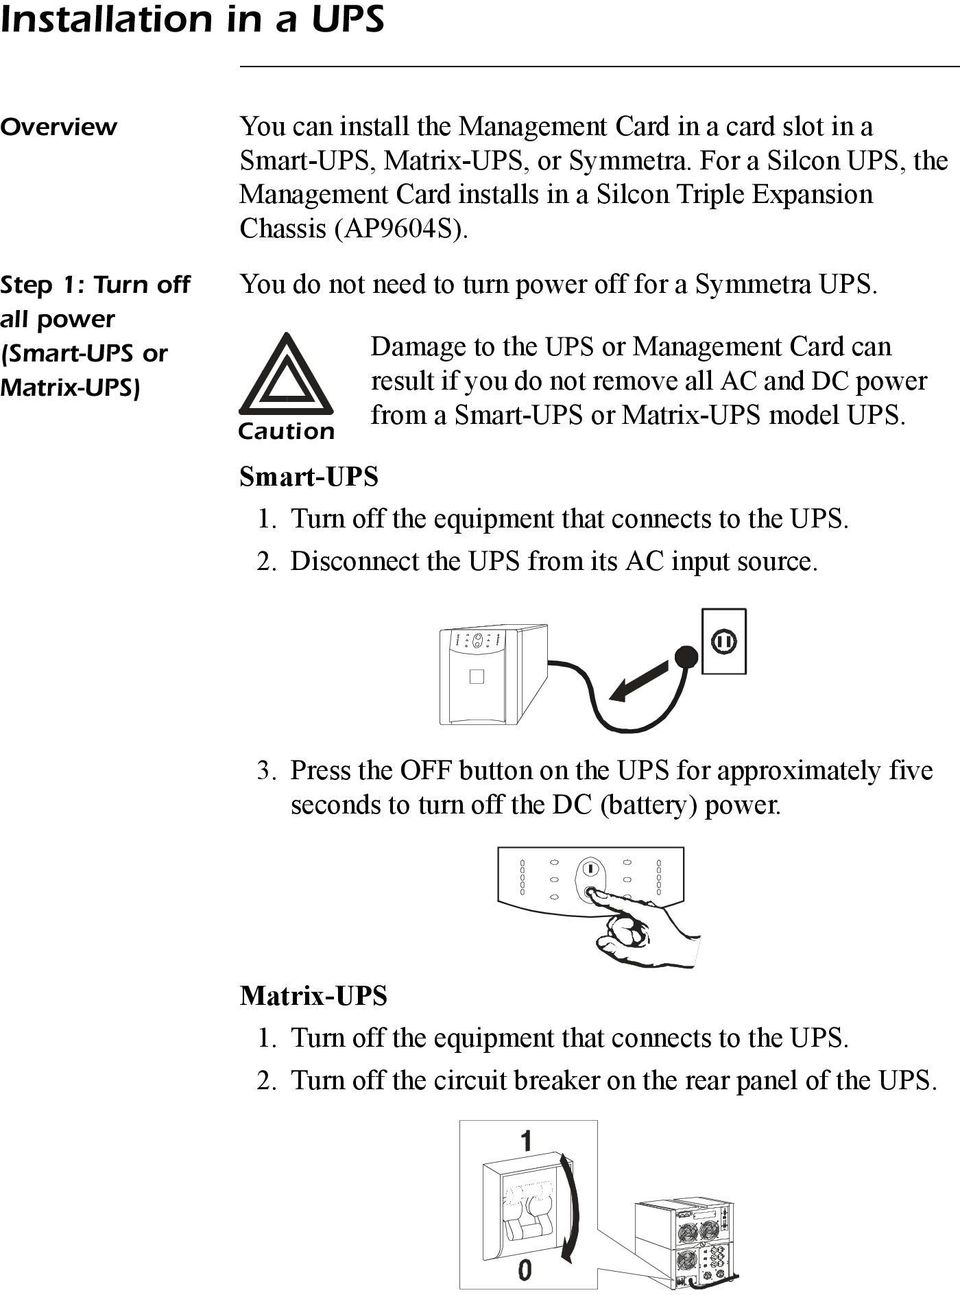 Caution Damage to the UPS or Management Card can result if you do not remove all AC and DC power from a Smart-UPS or Matrix-UPS model UPS. Smart-UPS 1. Turn off the equipment that connects to the UPS.